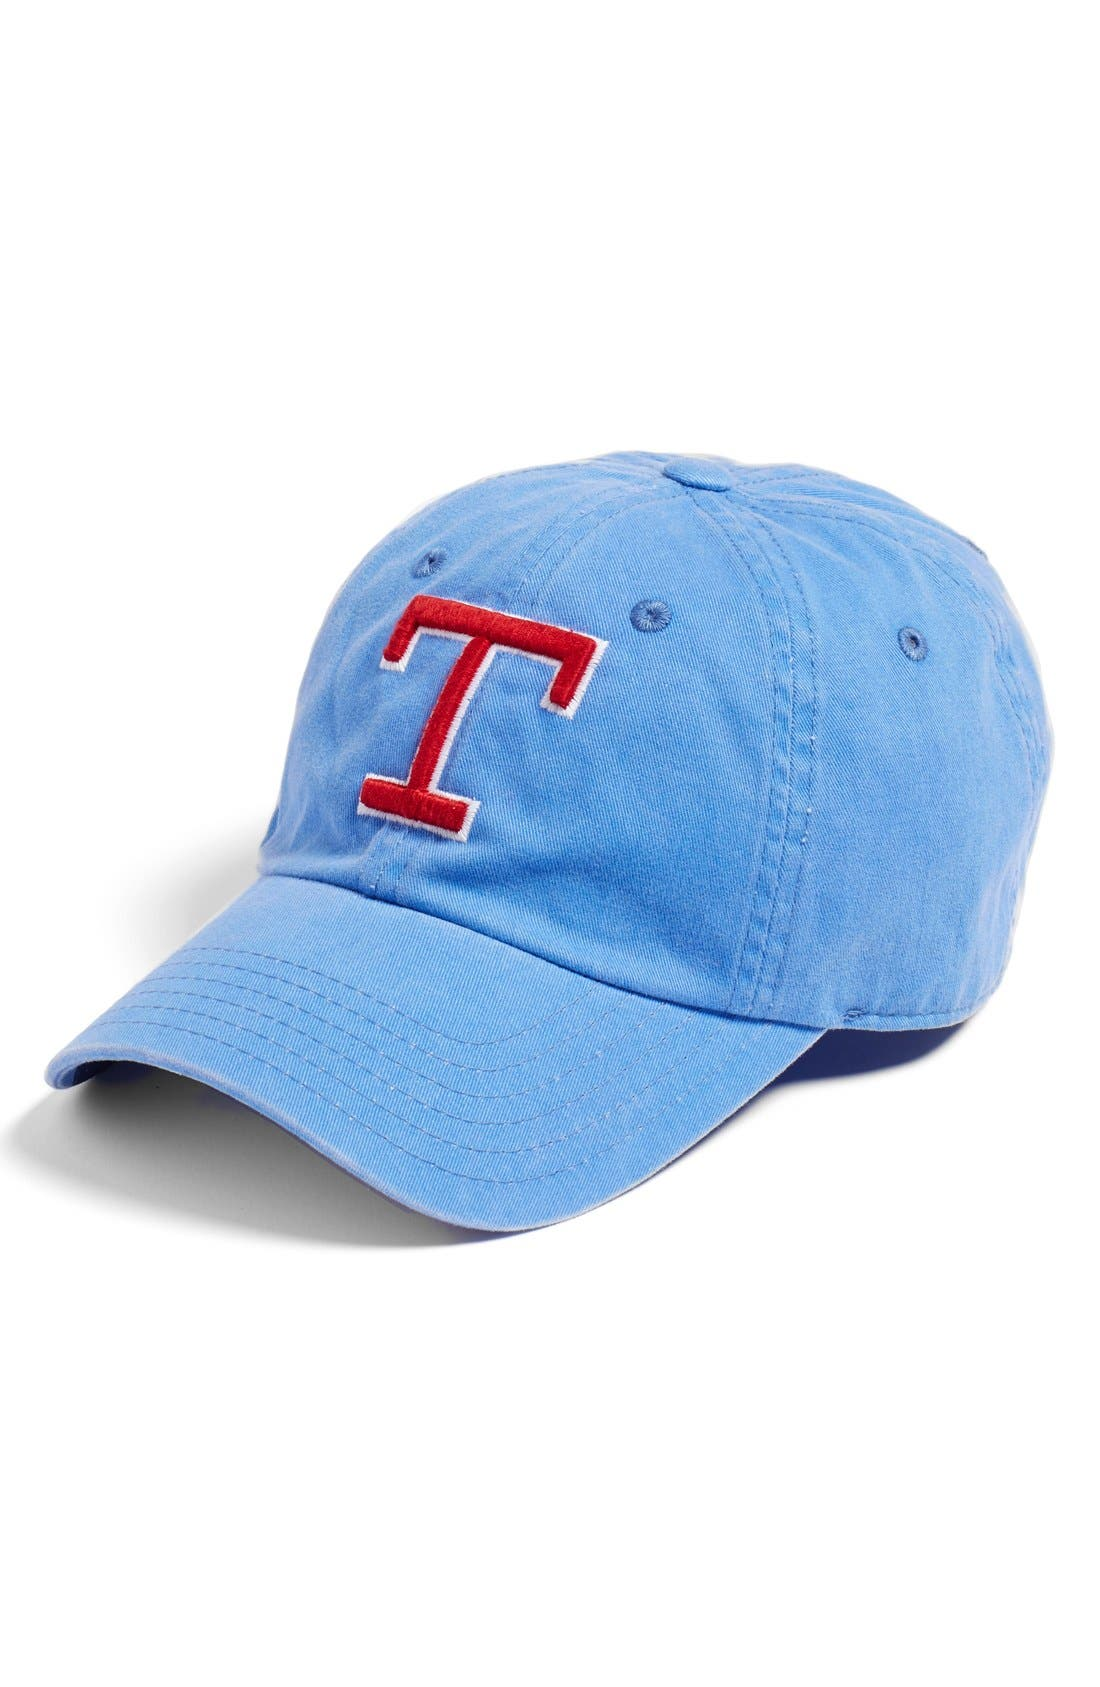 Alternate Image 1 Selected - American Needle New Raglan Texas Rangers Baseball Cap